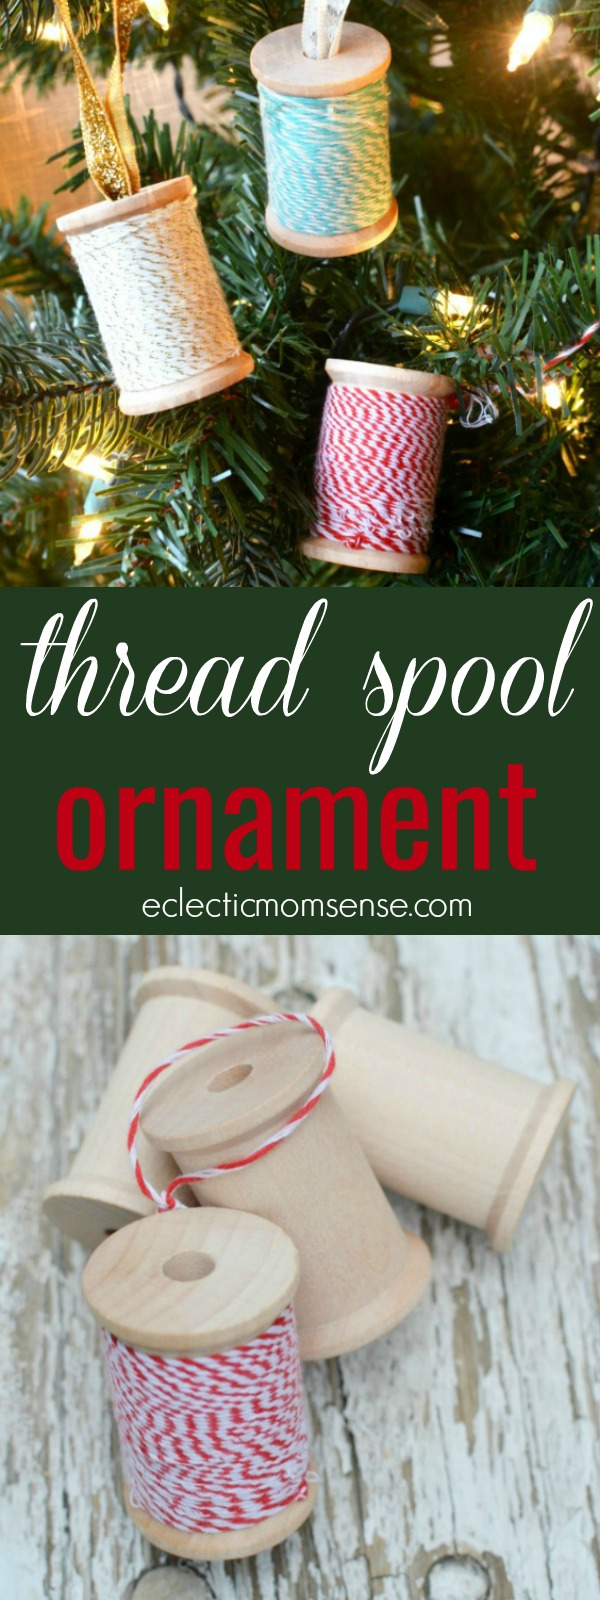 Thread Spool Ornament | easy handmade ornament #craft #christmas #ornament #handmade